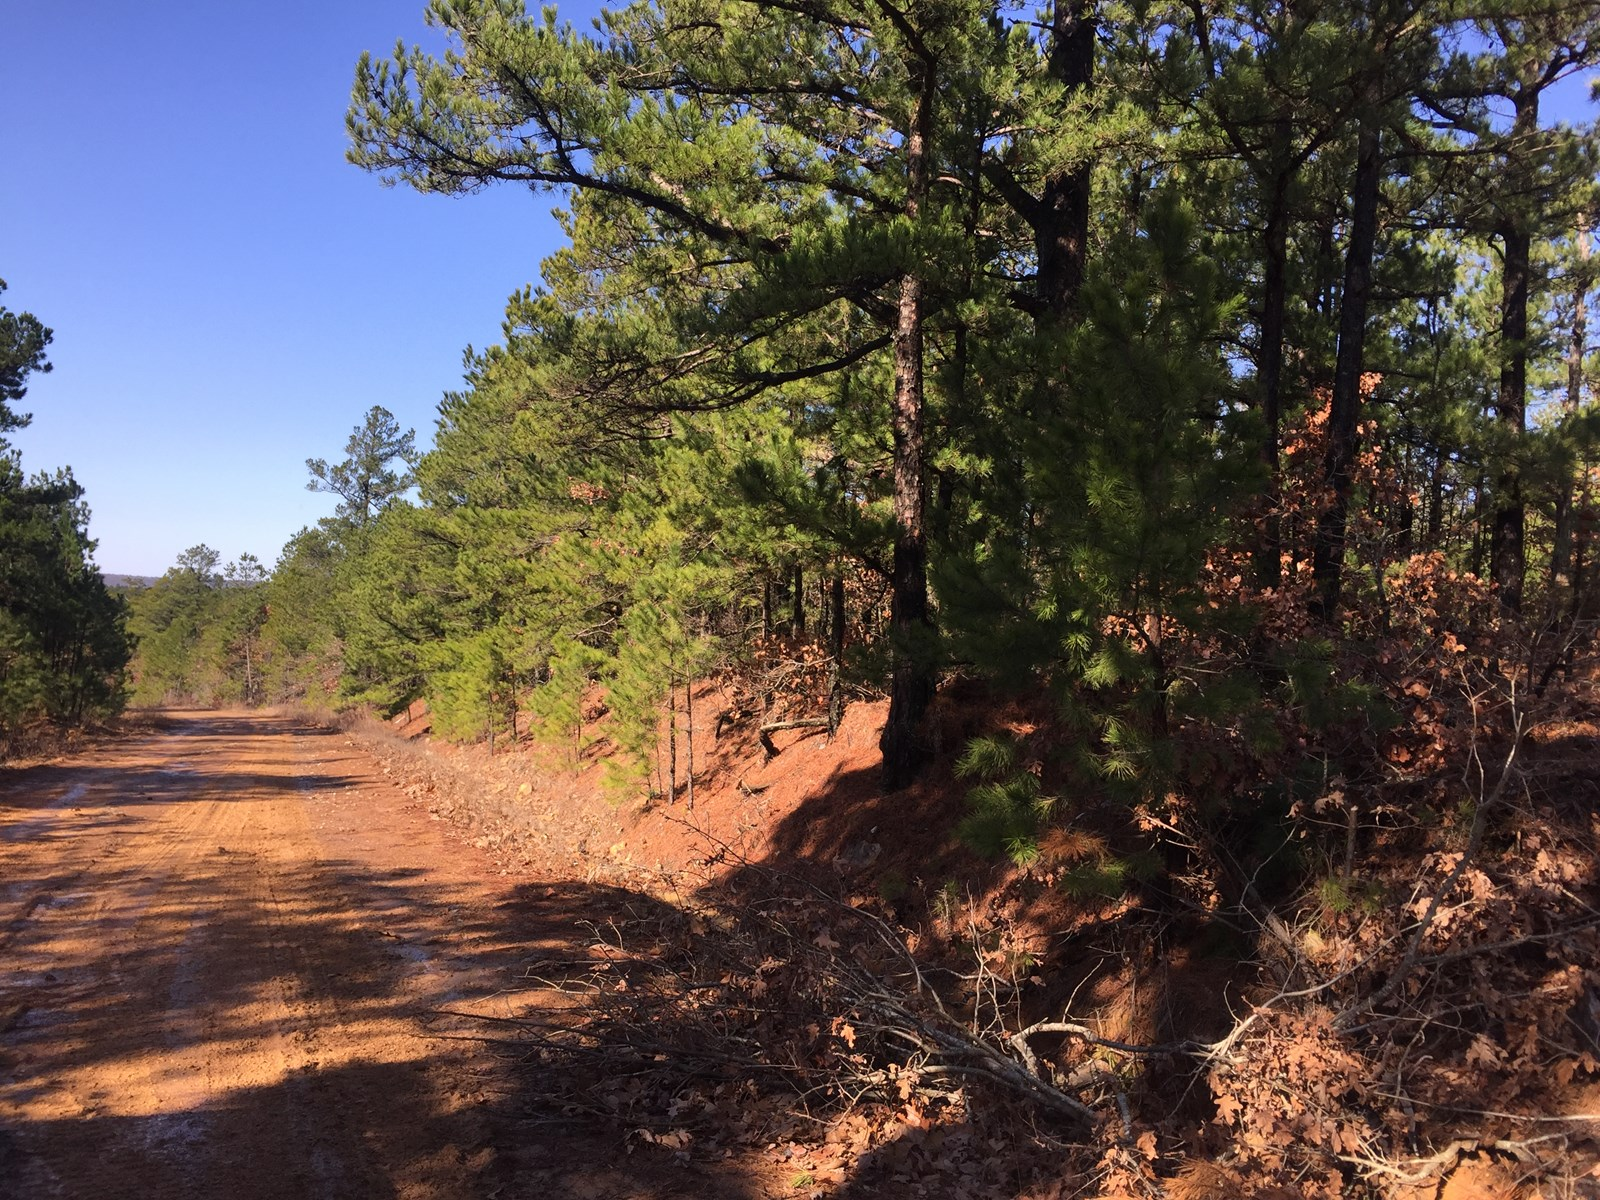 Land for Sale in Clayton,OK- Mountain Retreat Hunting Land